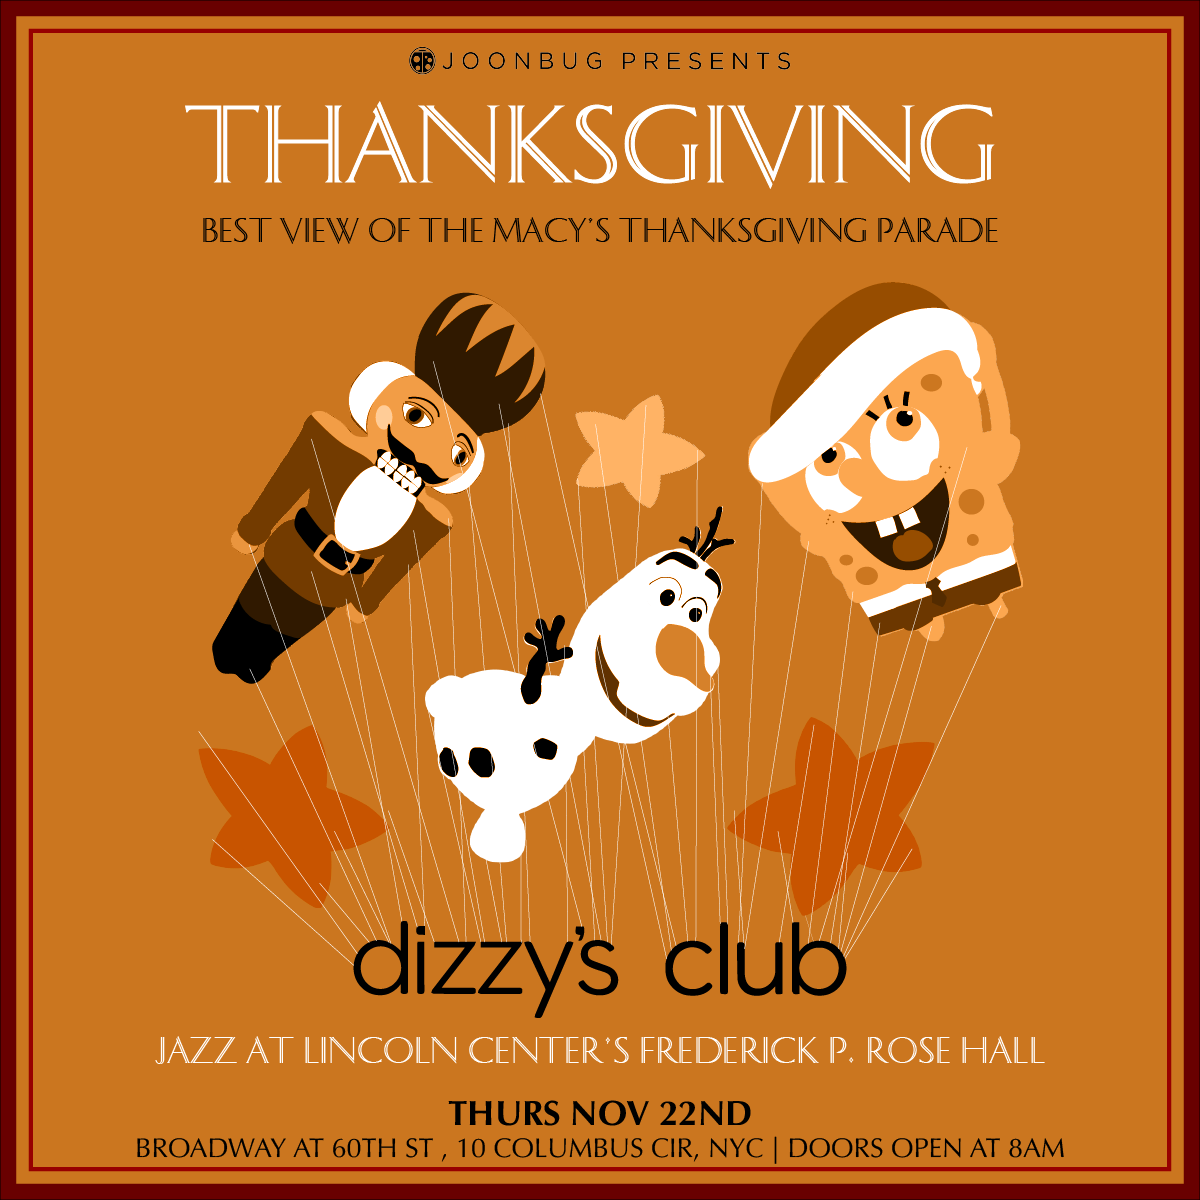 Macy's Thanksgiving Parade Viewing Party @ Dizzy's Club